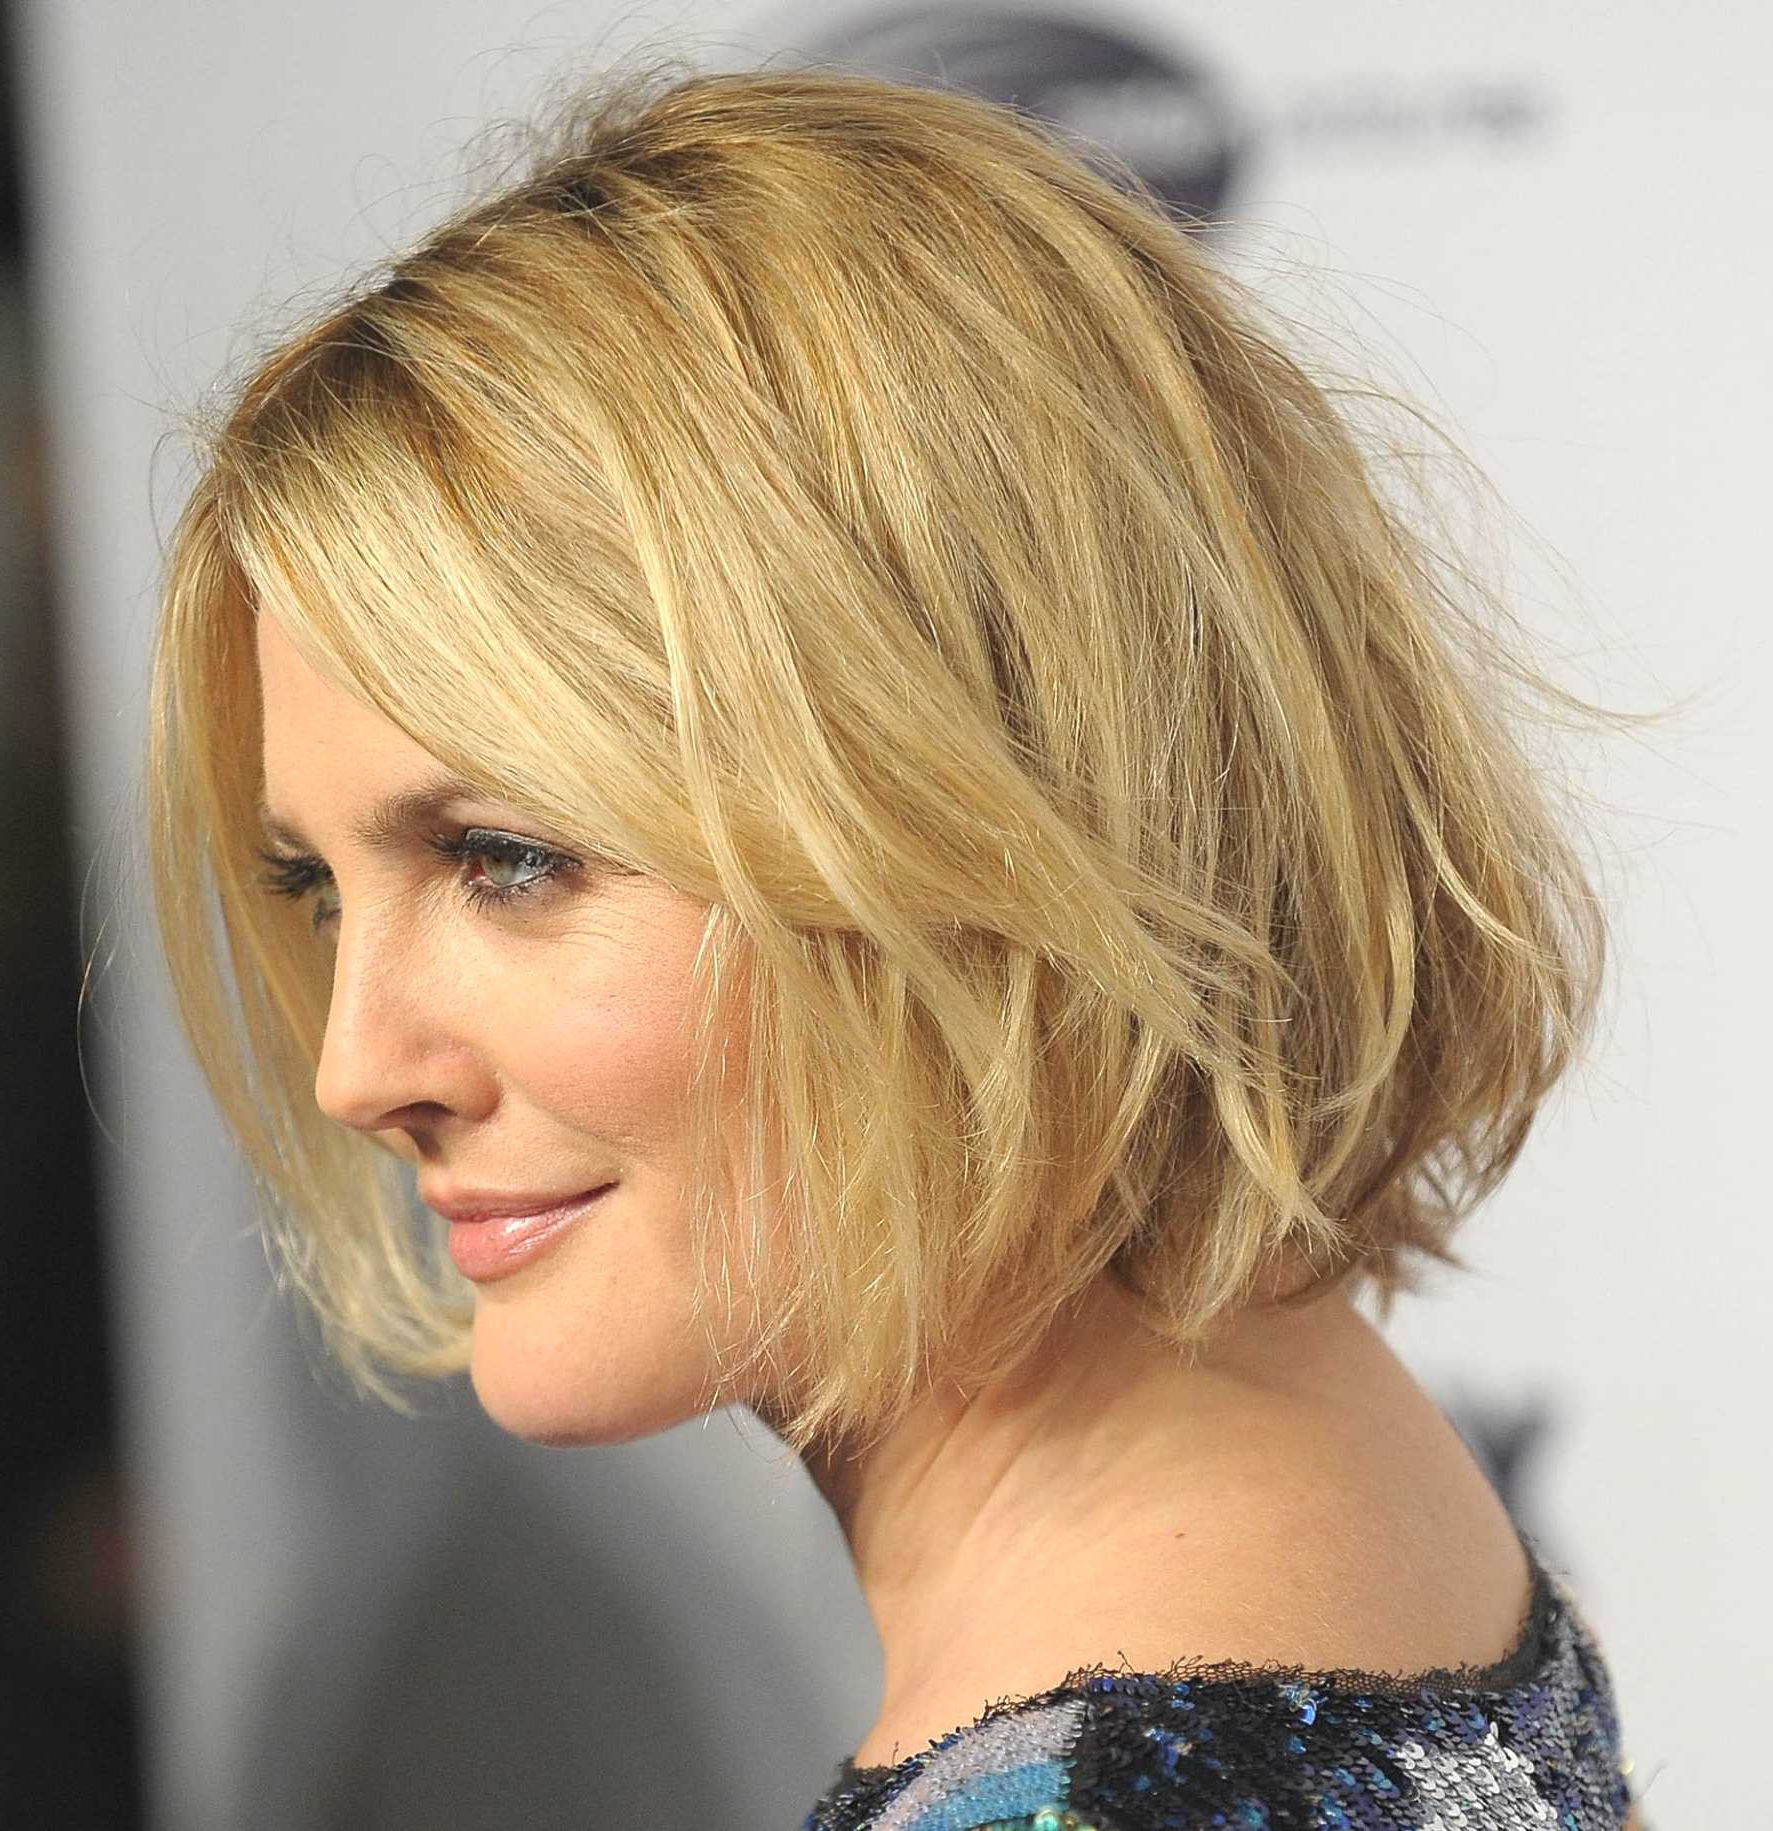 Best Of Bob Hairstyles Without Bangs Pertaining To Short Haircuts Without Bangs (View 23 of 25)